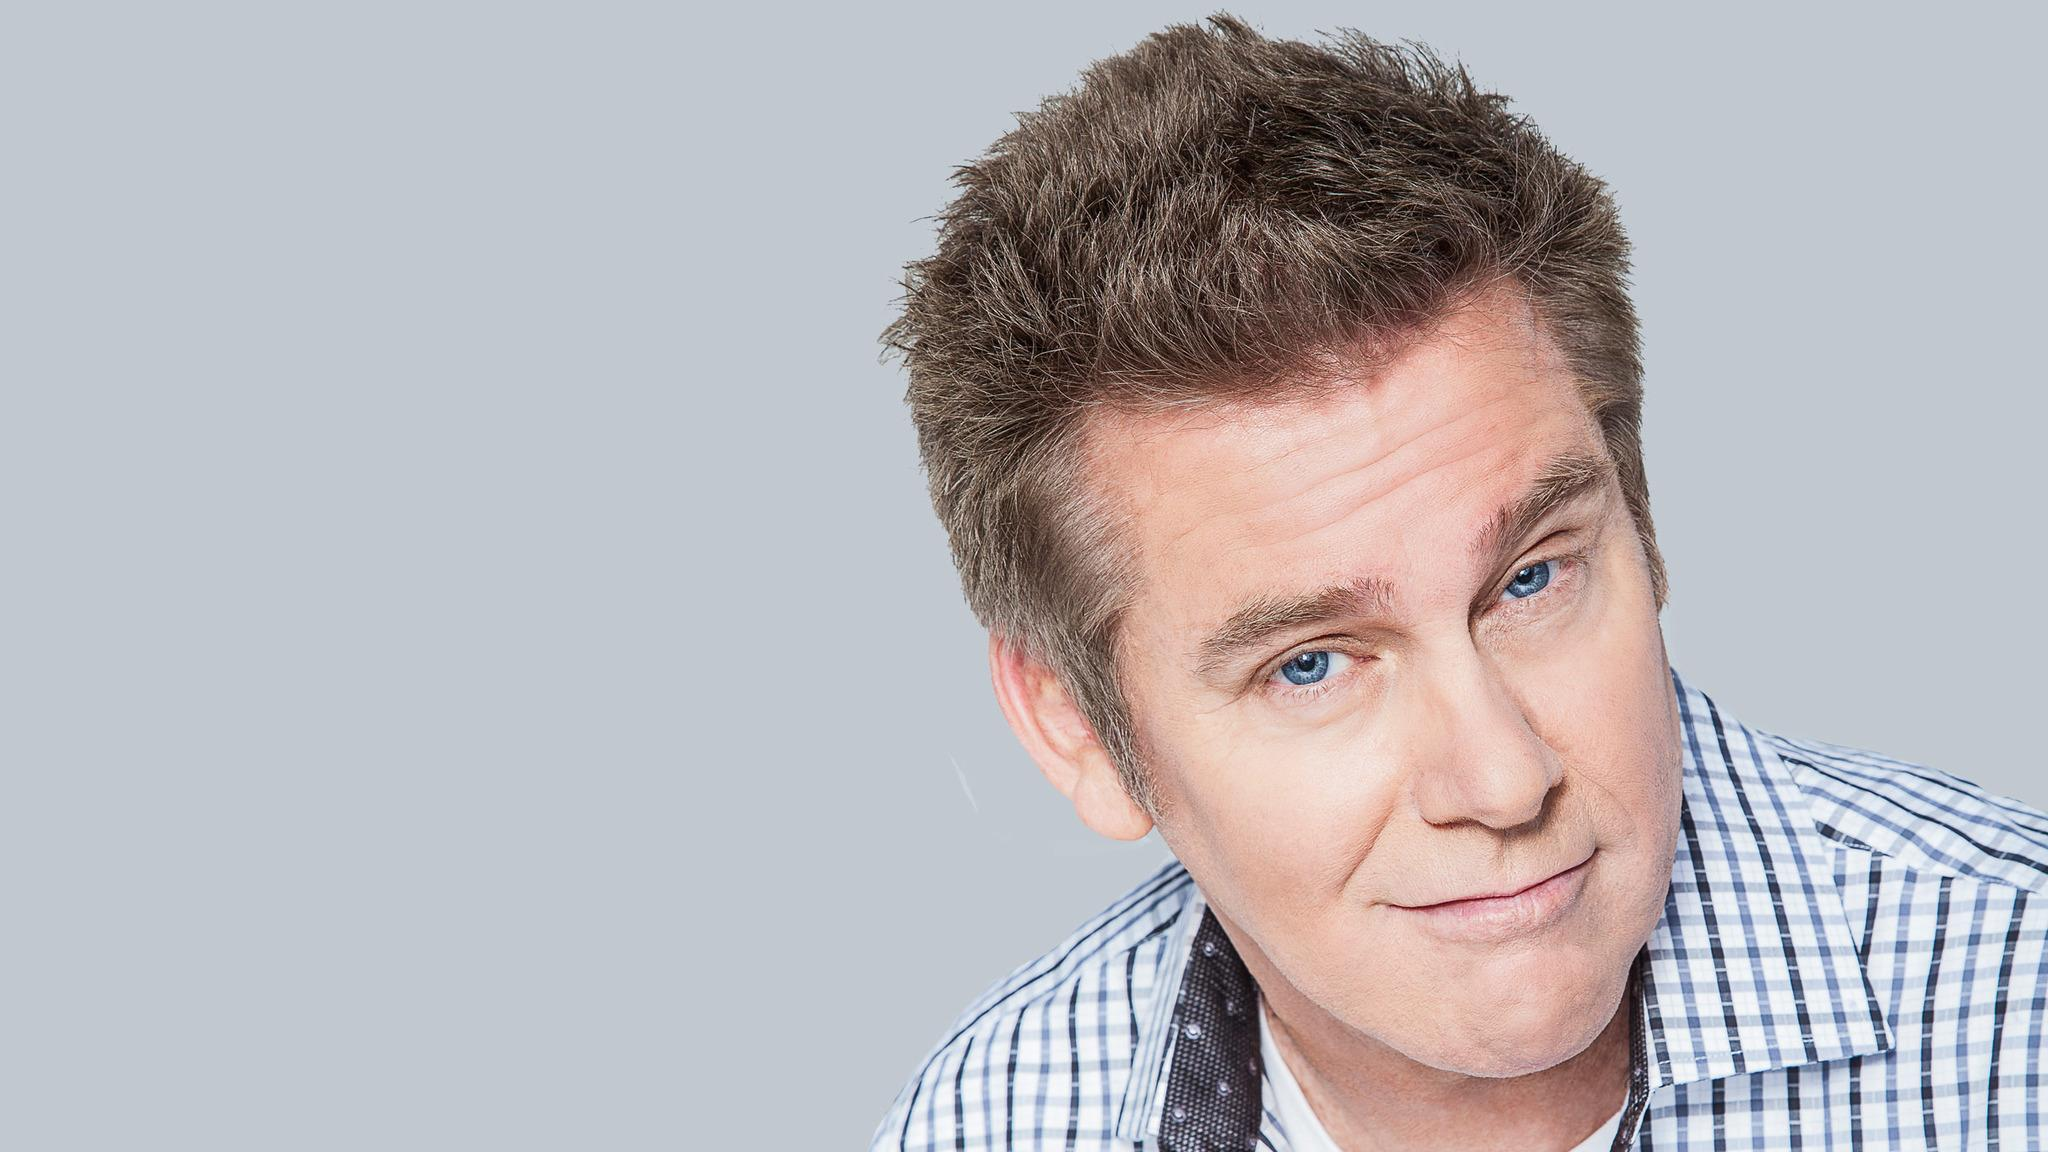 Brian Regan free presale pa55w0rd for early tickets in Irving